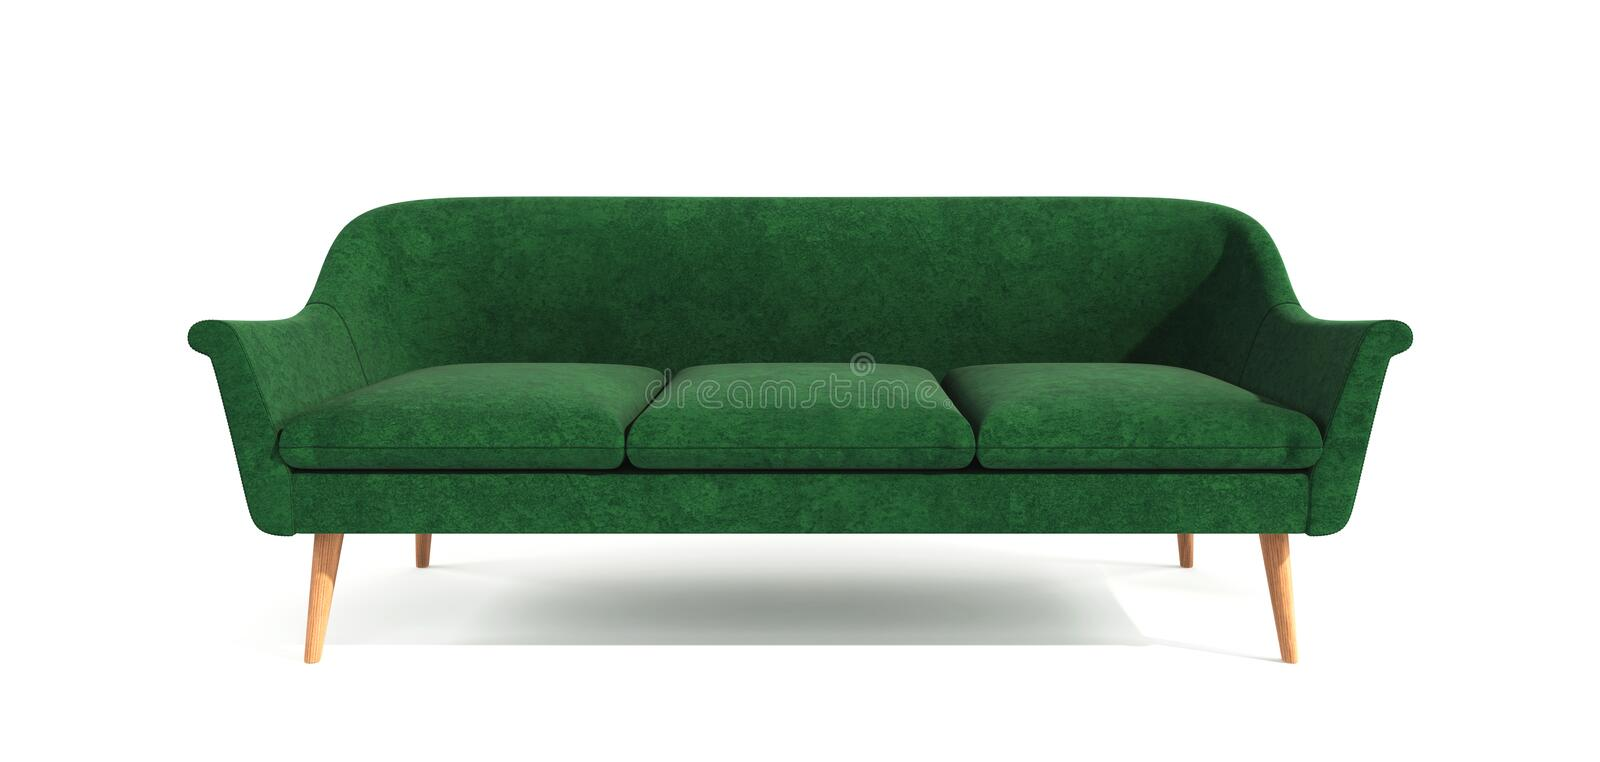 Green classic modern stylish sofa with wooden legs isolated on white background. Furniture, interior object, stylish sofa. Single. Piece of furniture royalty free stock images